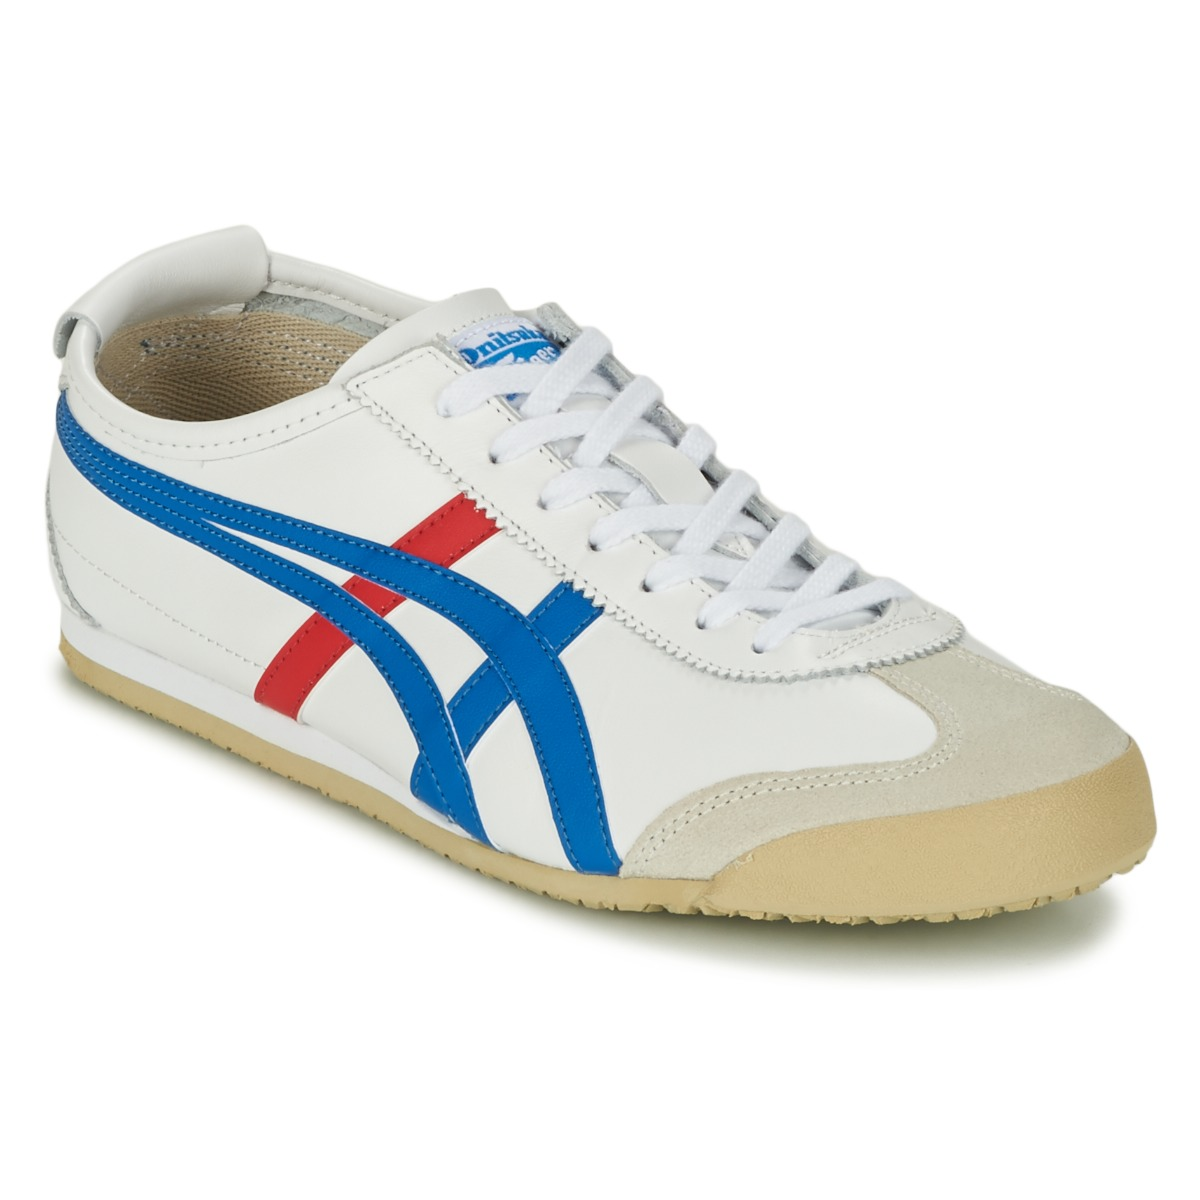 onitsuka tiger mexico 66 black friday 1987